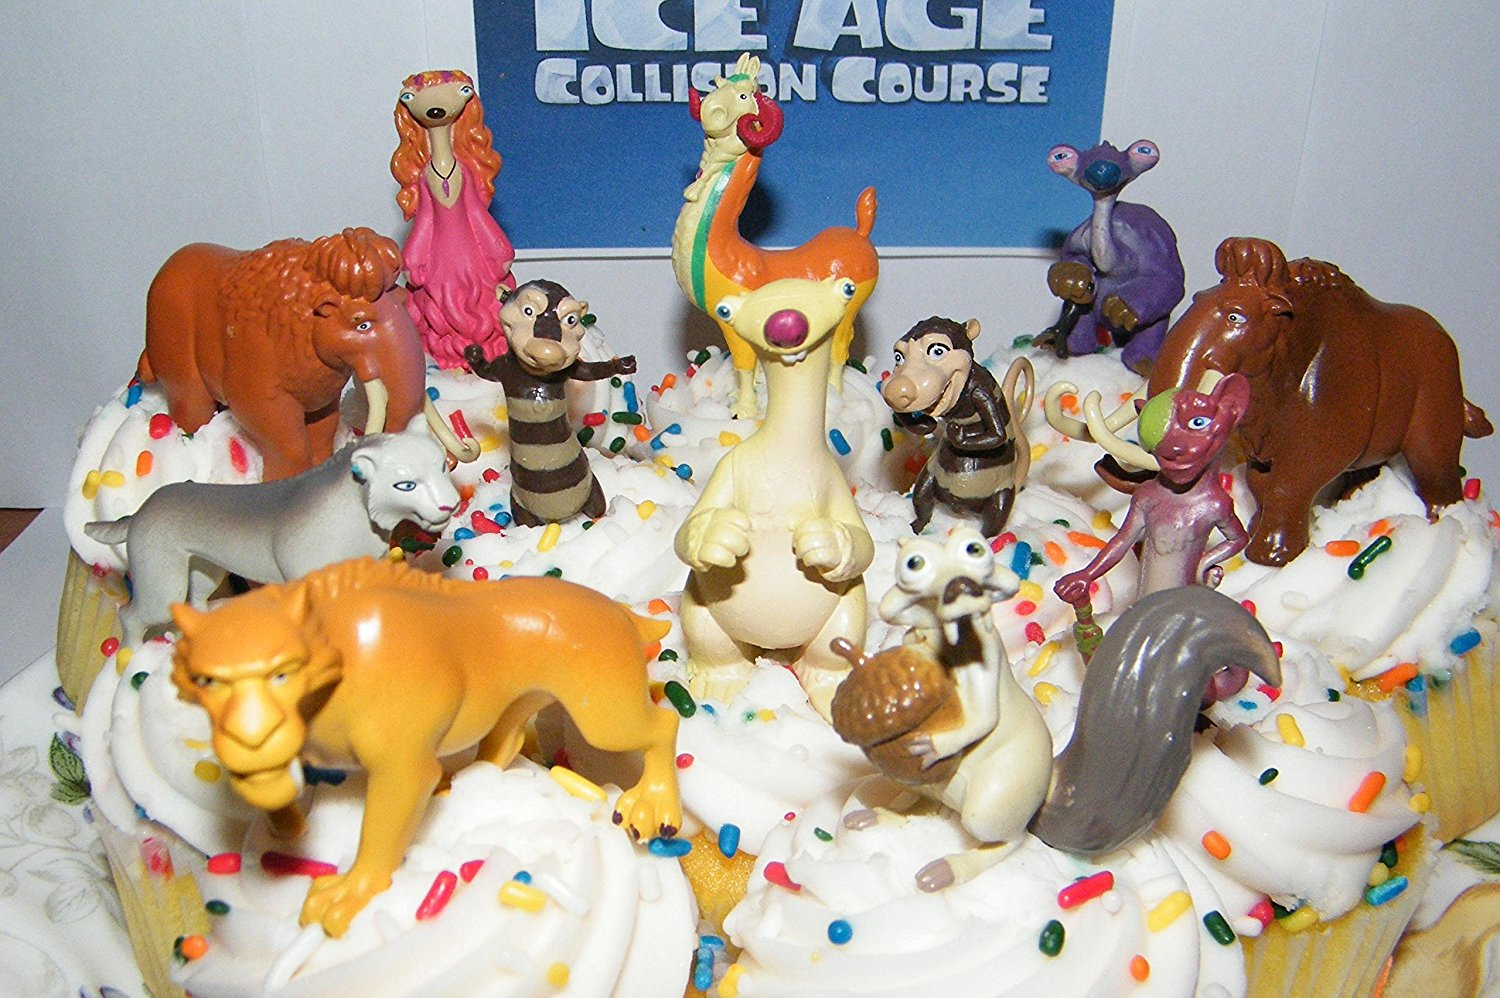 Ice Age Collision Course Movie Deluxe Cake Toppers Cupcake